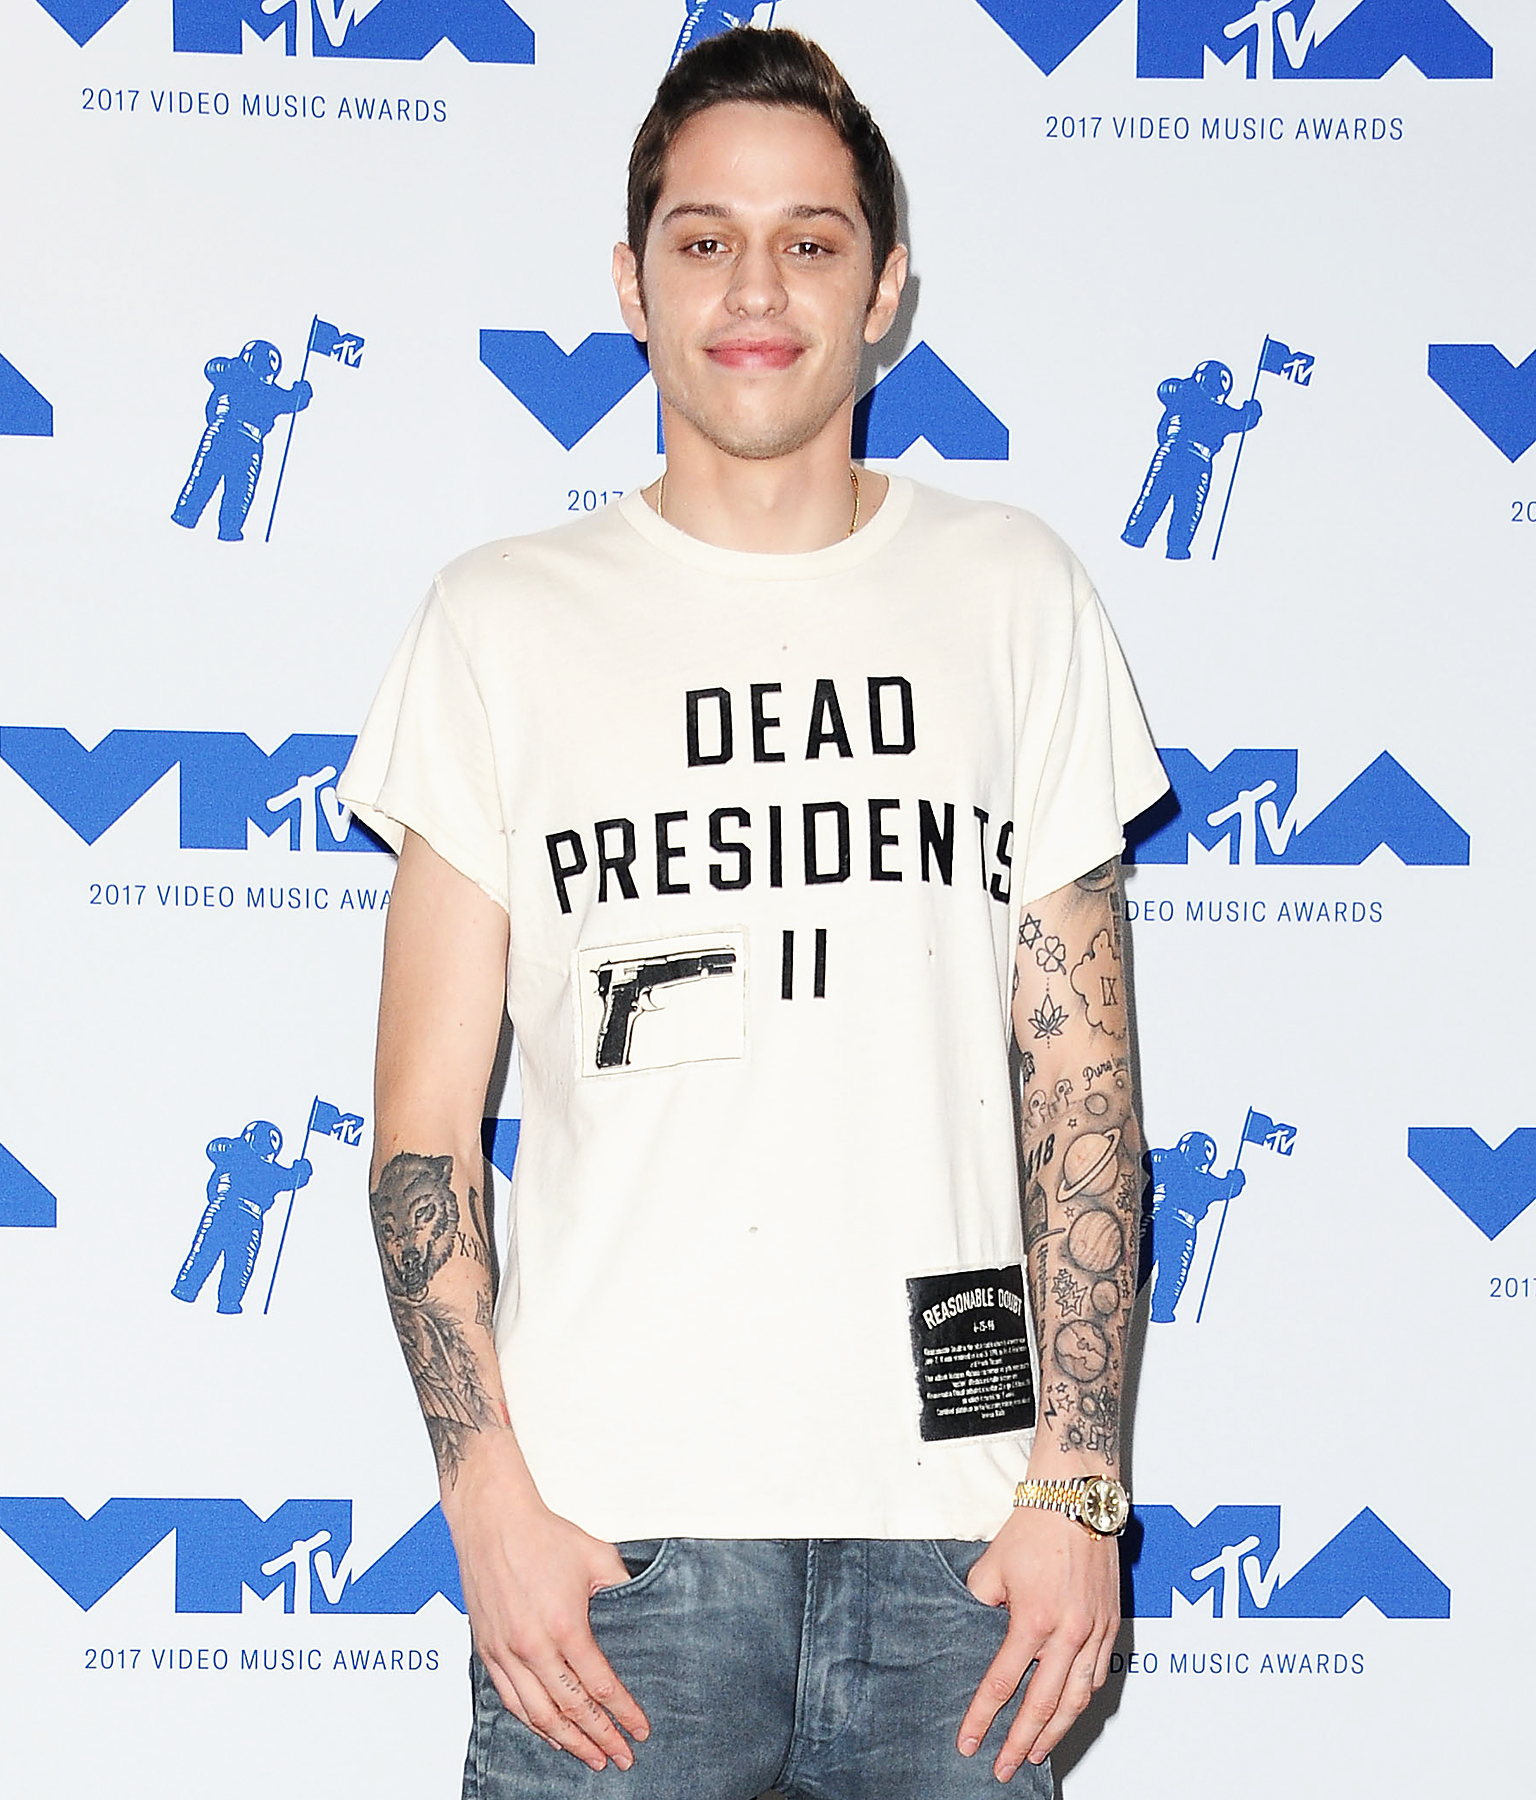 Did SNL's Pete Davidson Just Get a Hillary Clinton Tattoo?